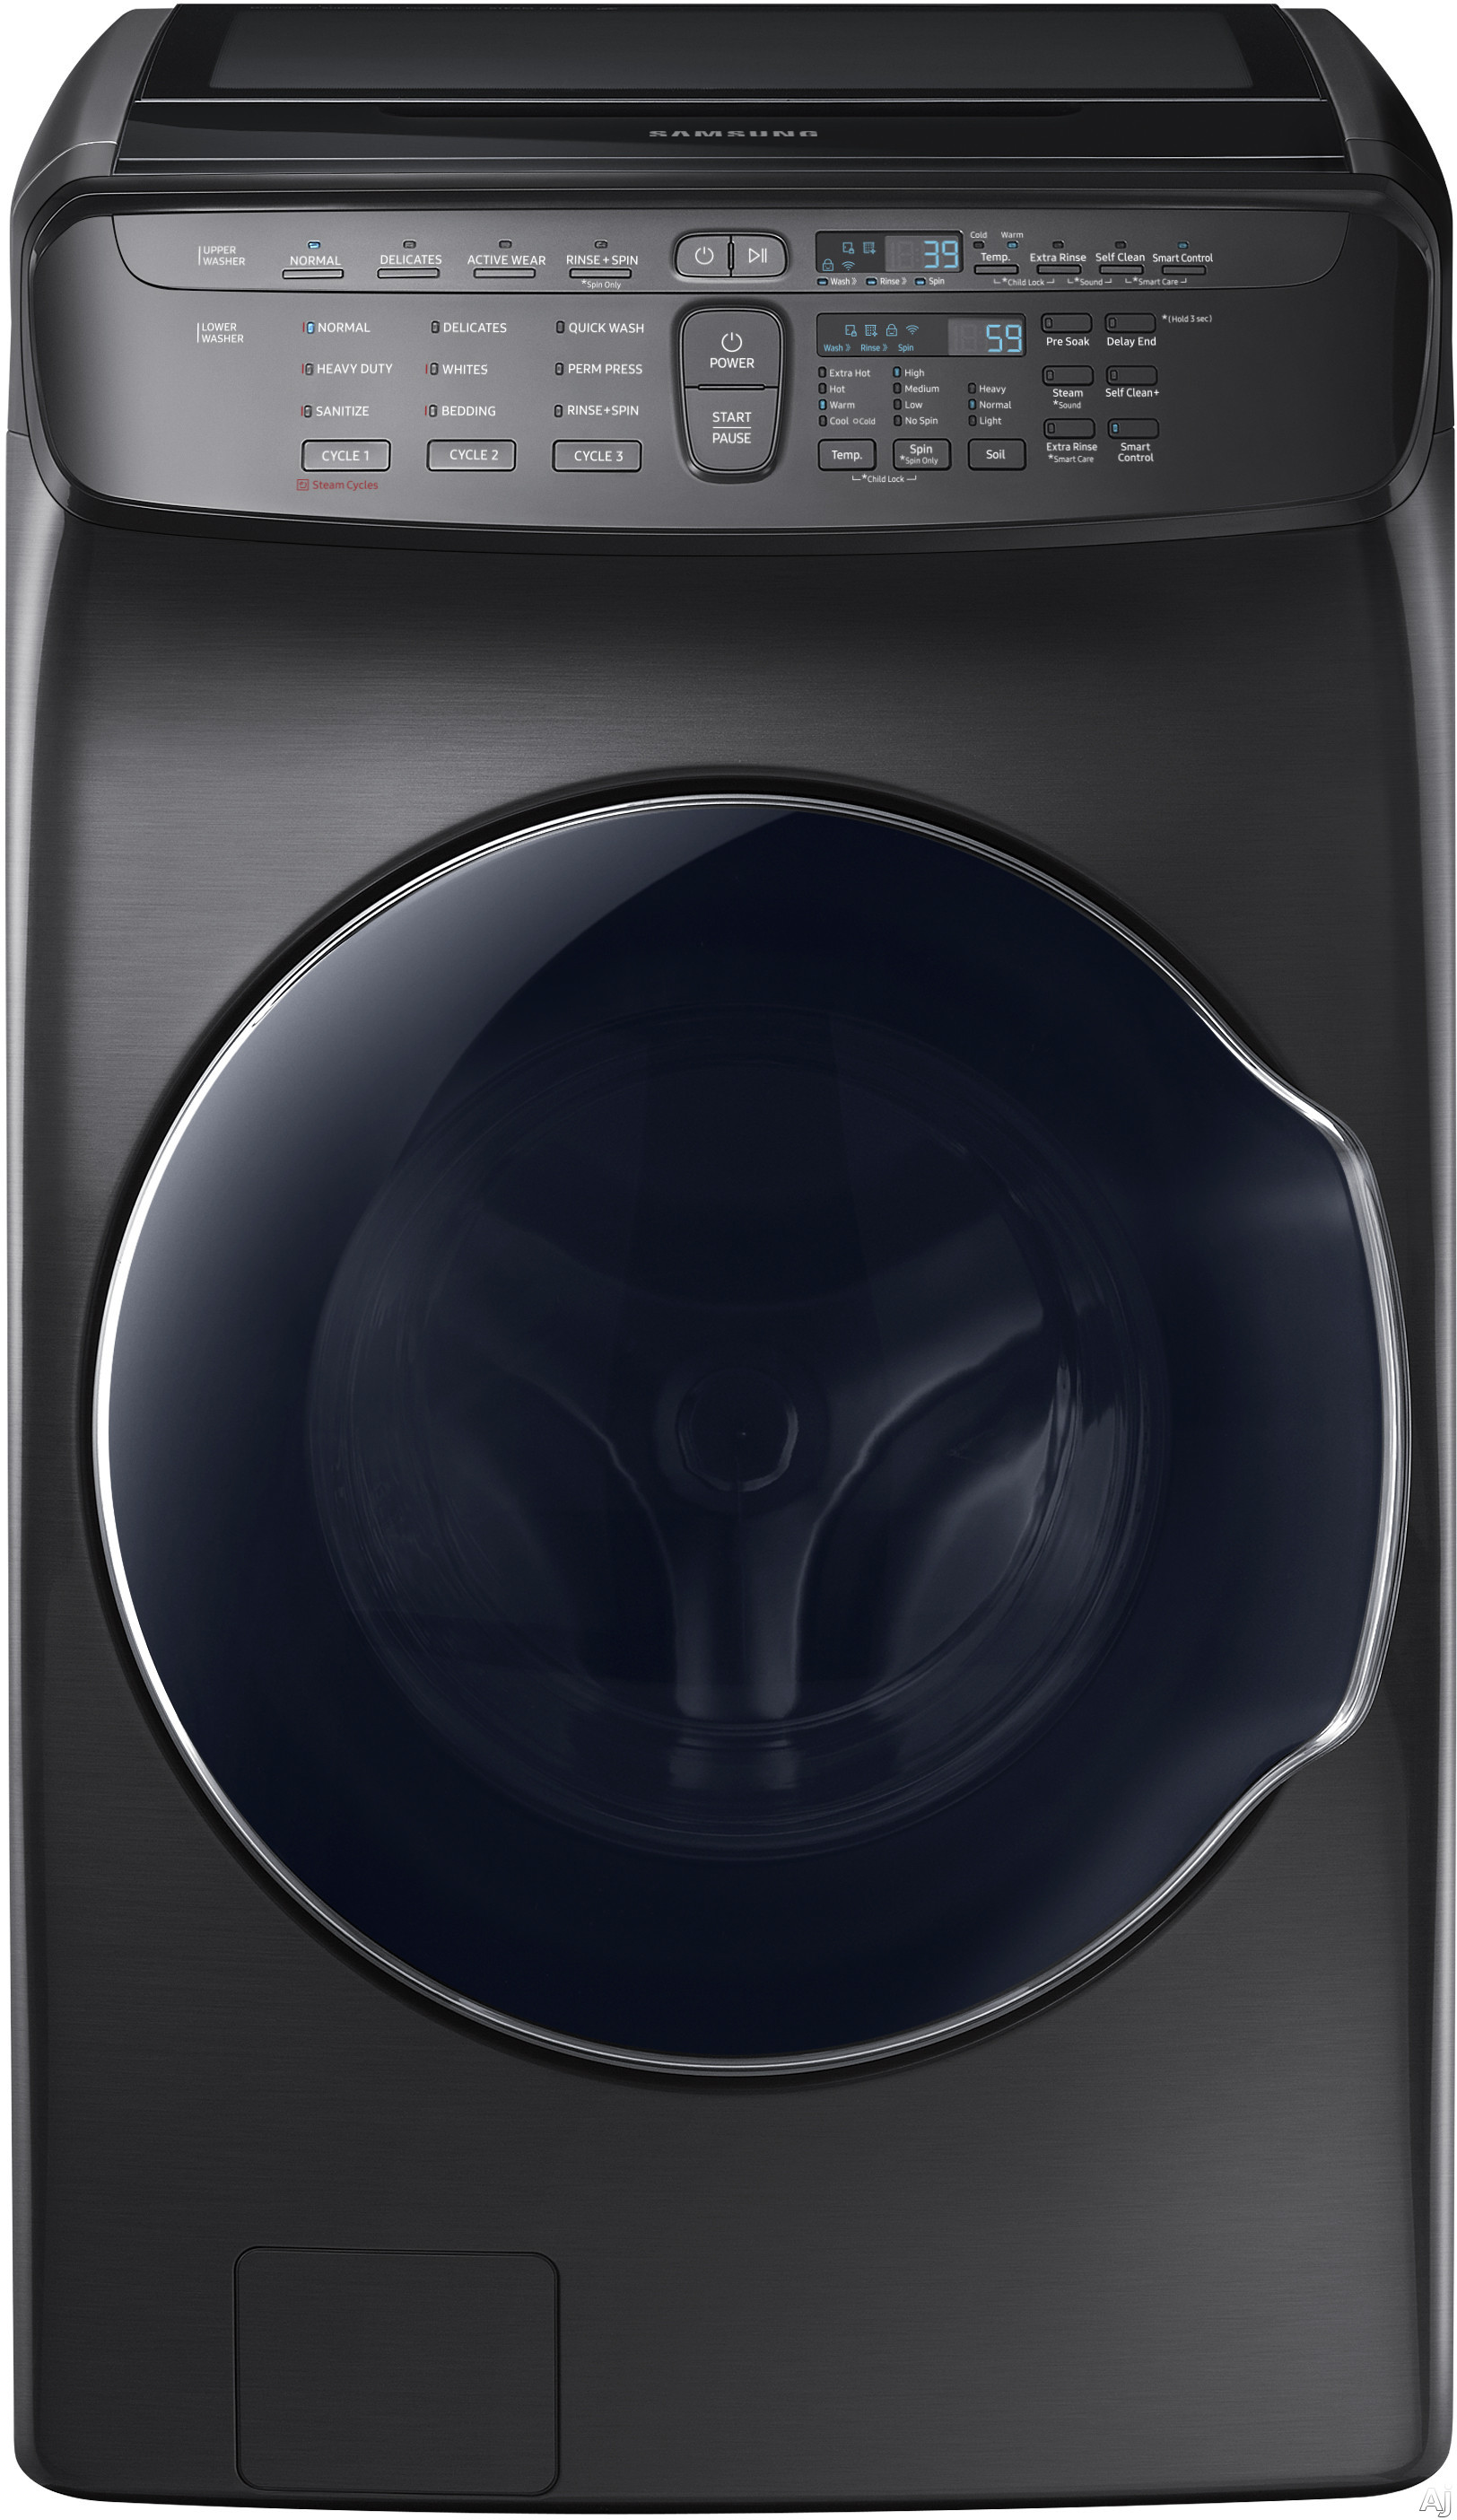 "Samsung FlexWash WV55M9600AV 27 Inch FlexWashâ""¢ Washer with Steam, Wi-Fi Connectivity, Smart Care, 11 Wash Cycles, Self-Clean+ Option, Sanitize Cycle, 3-Tray Dispenser, Vibration Reduction Plusâ""¢ Technology and 5.5 cu. ft. Capacity: Black Stainless Ste"